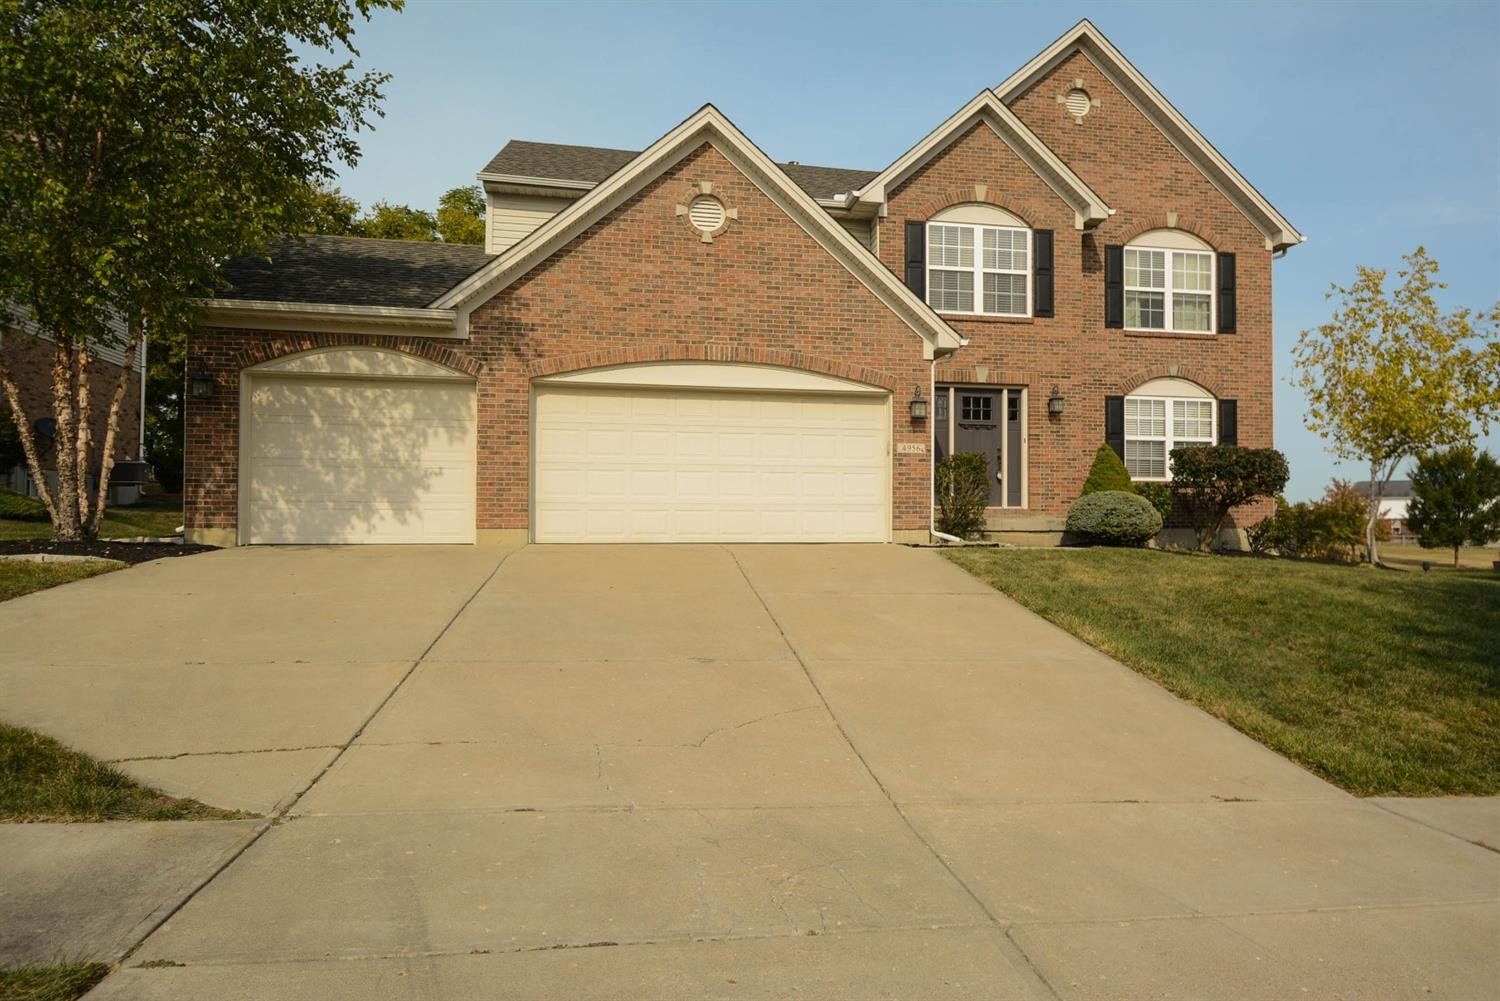 Property for sale at 4956 Spring Leaf Drive, Liberty Twp,  Ohio 45011